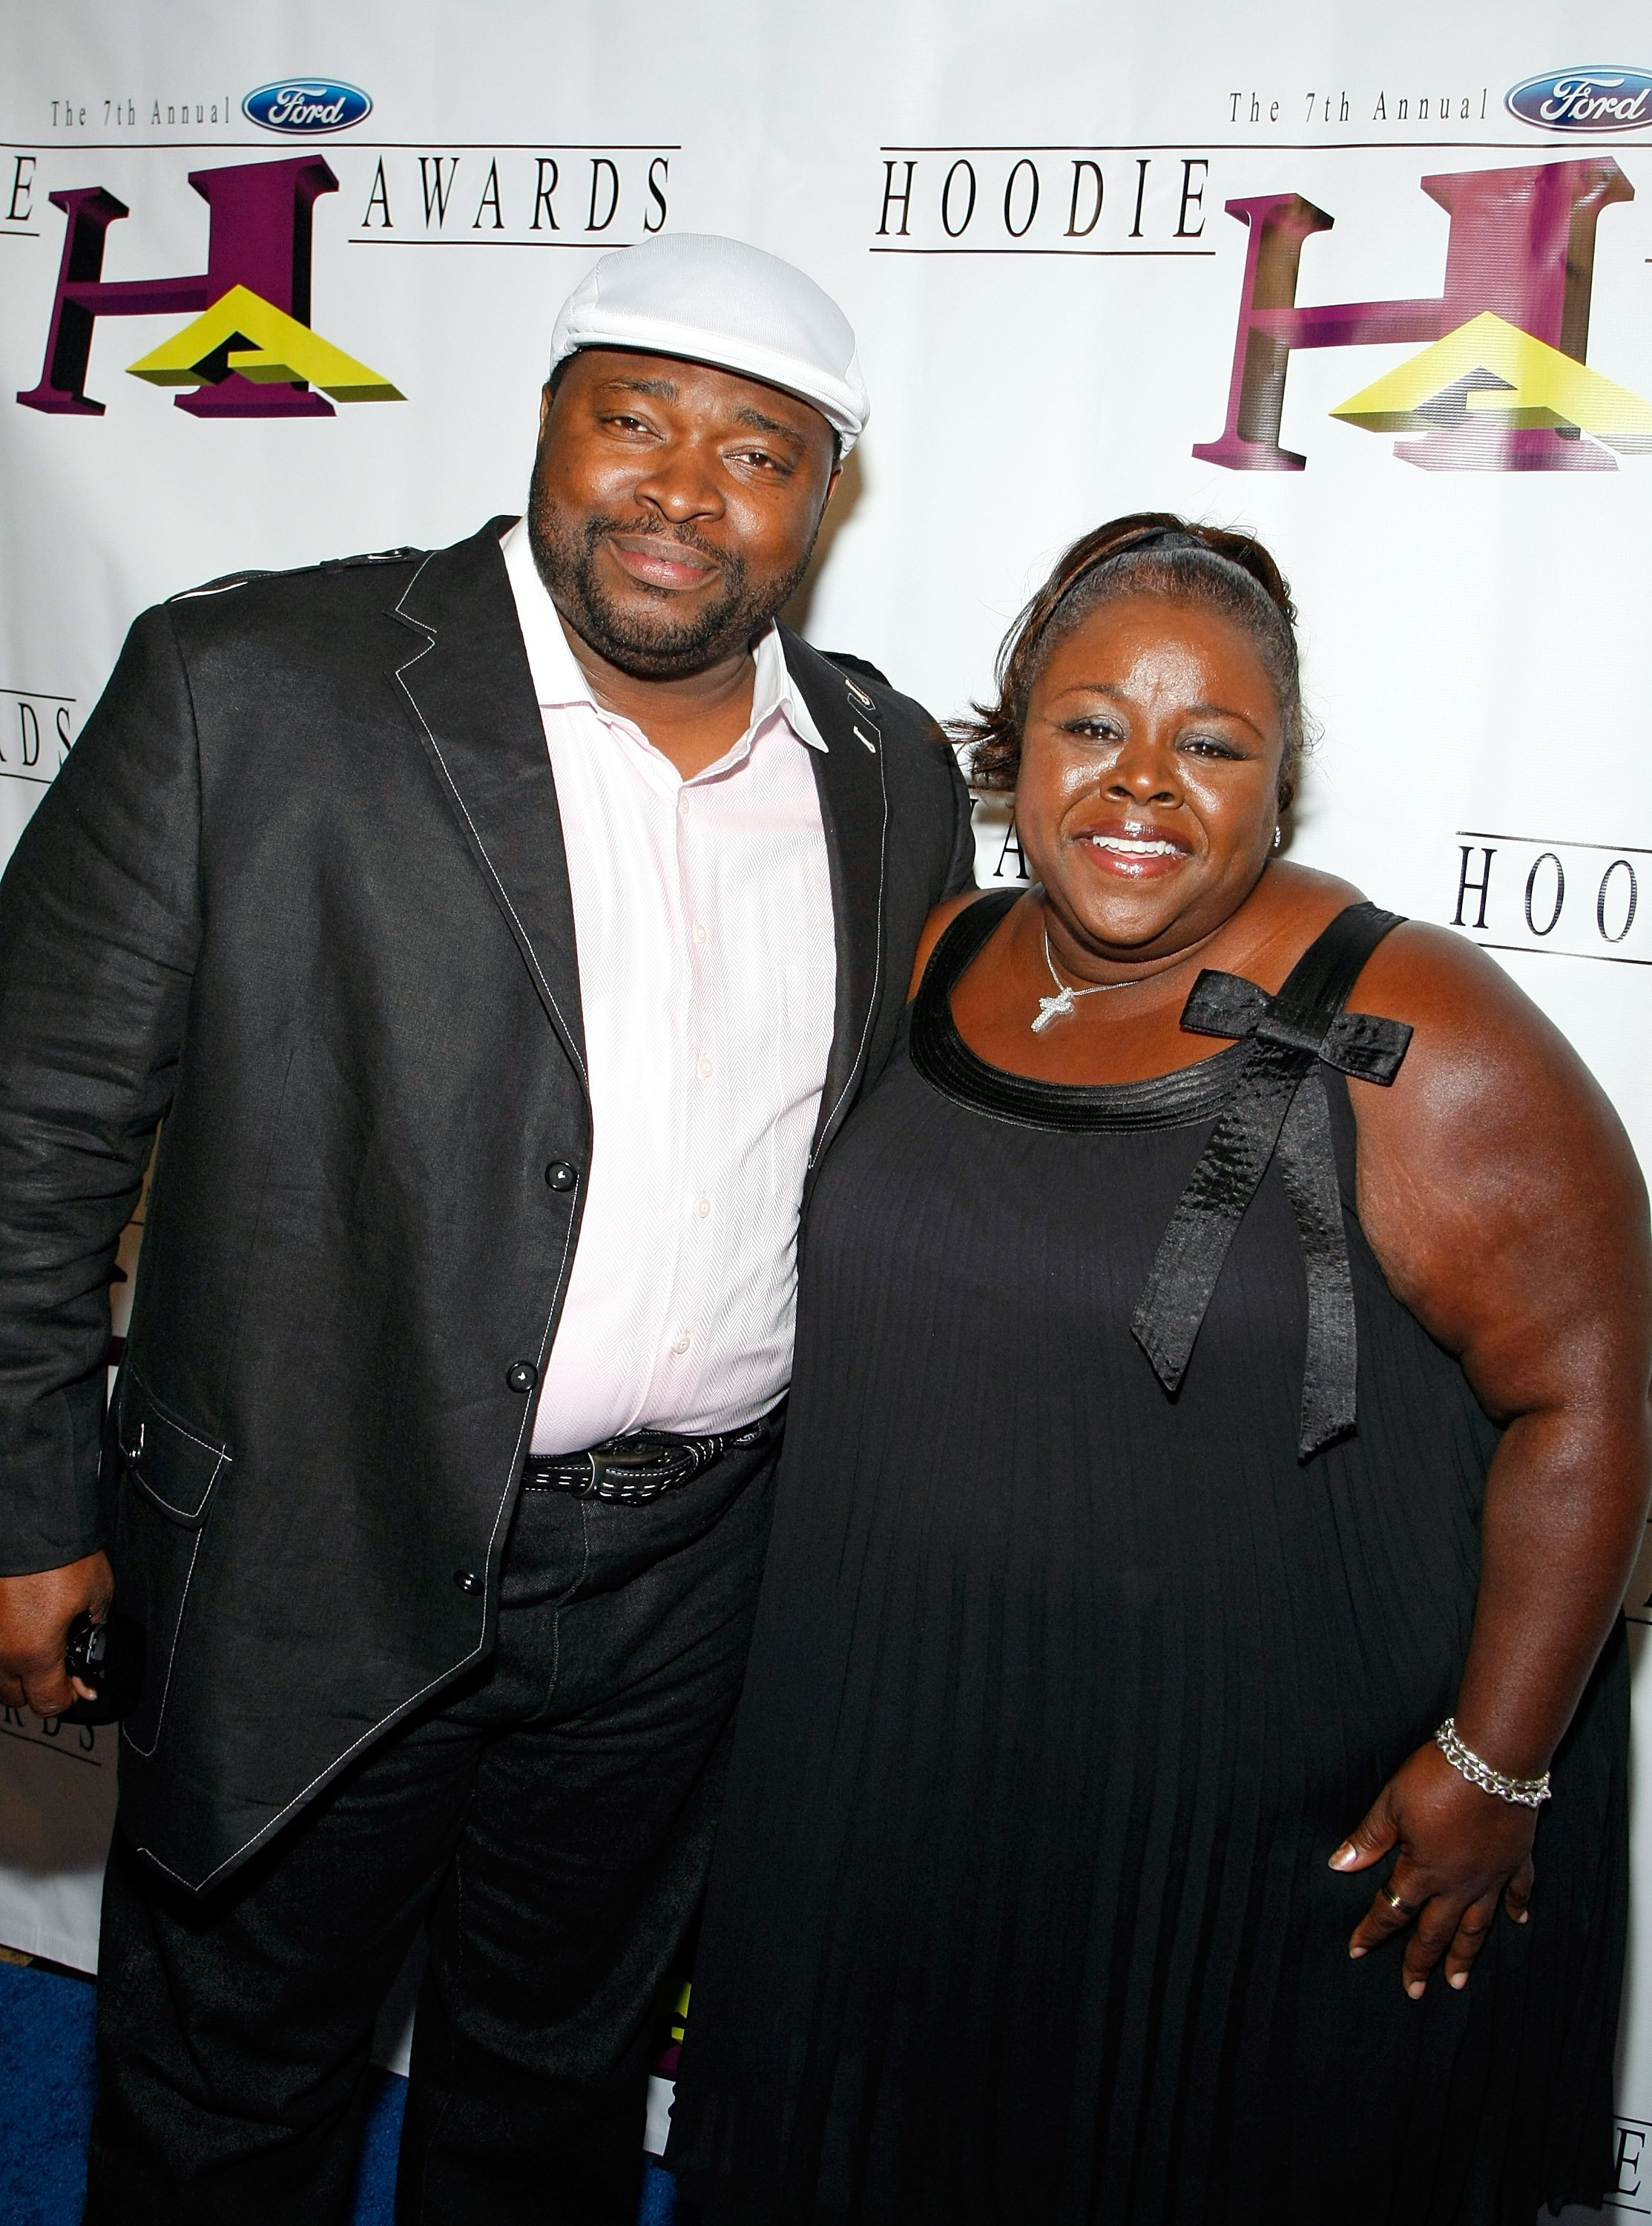 LaVan Davis and Cassi Davis at the 7th annual Hoodie Awards on August 15, 2009 in Las Vegas, Nevada   Photo: Getty Images